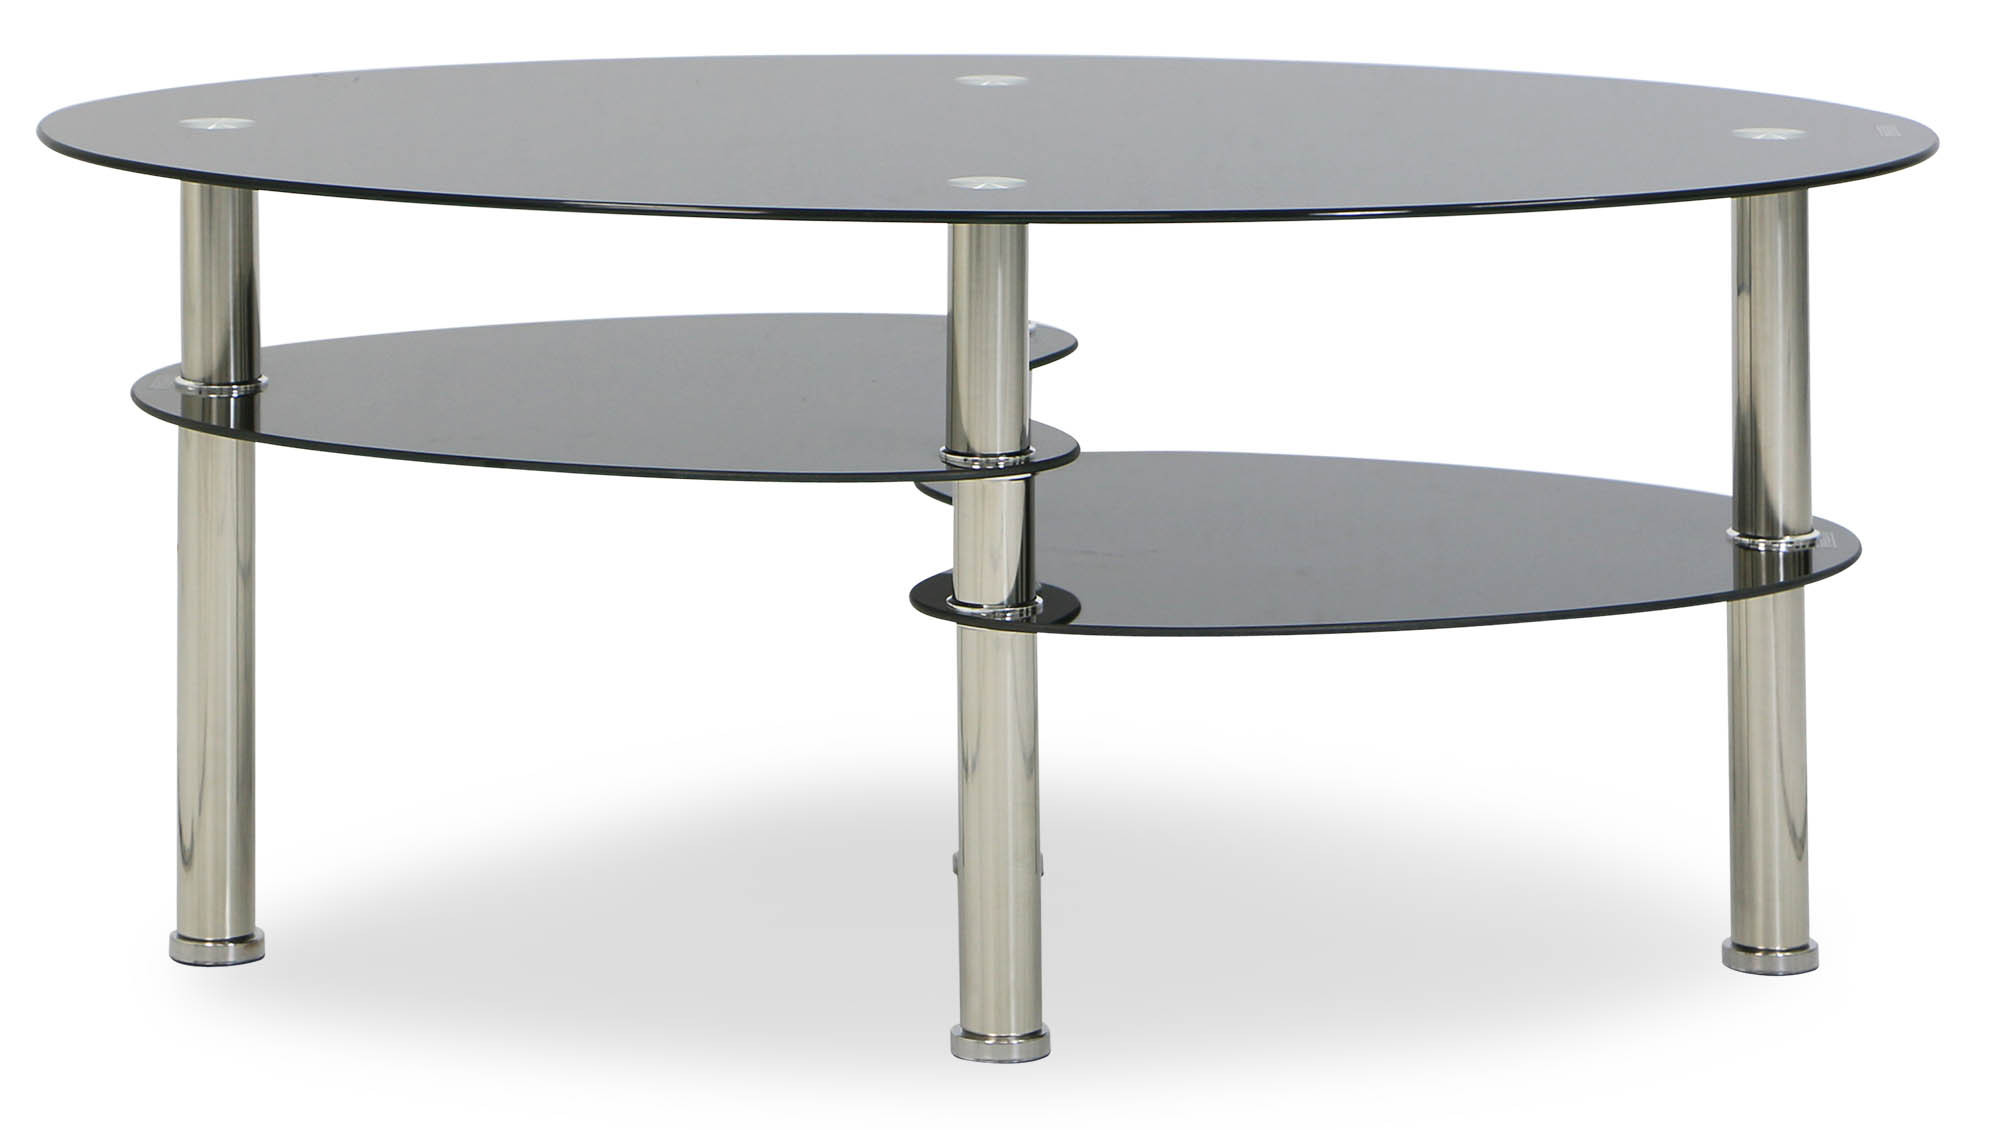 Krystal Eclipse Black Tempered Glass Coffee Table Furniture Home D Cor Fortytwo